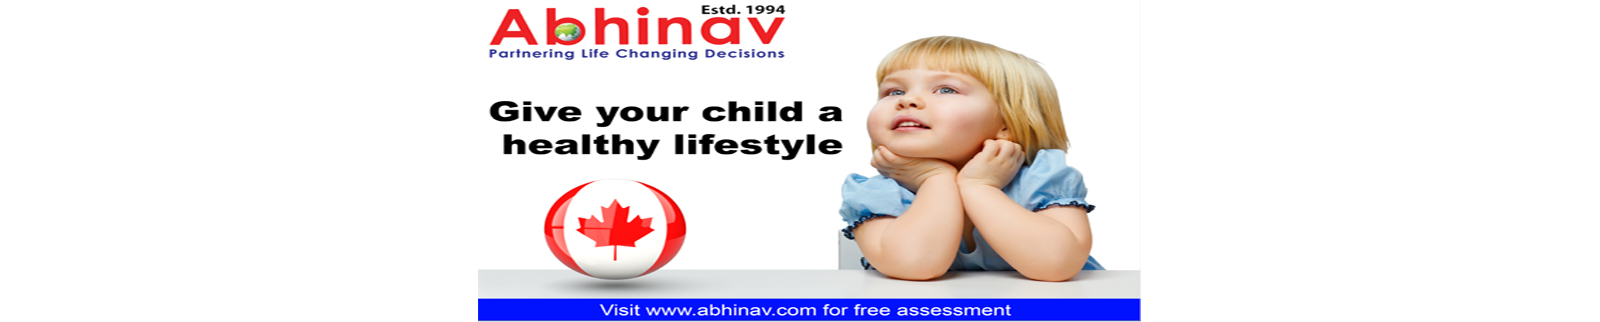 Give Your Child A Healthy Life Style